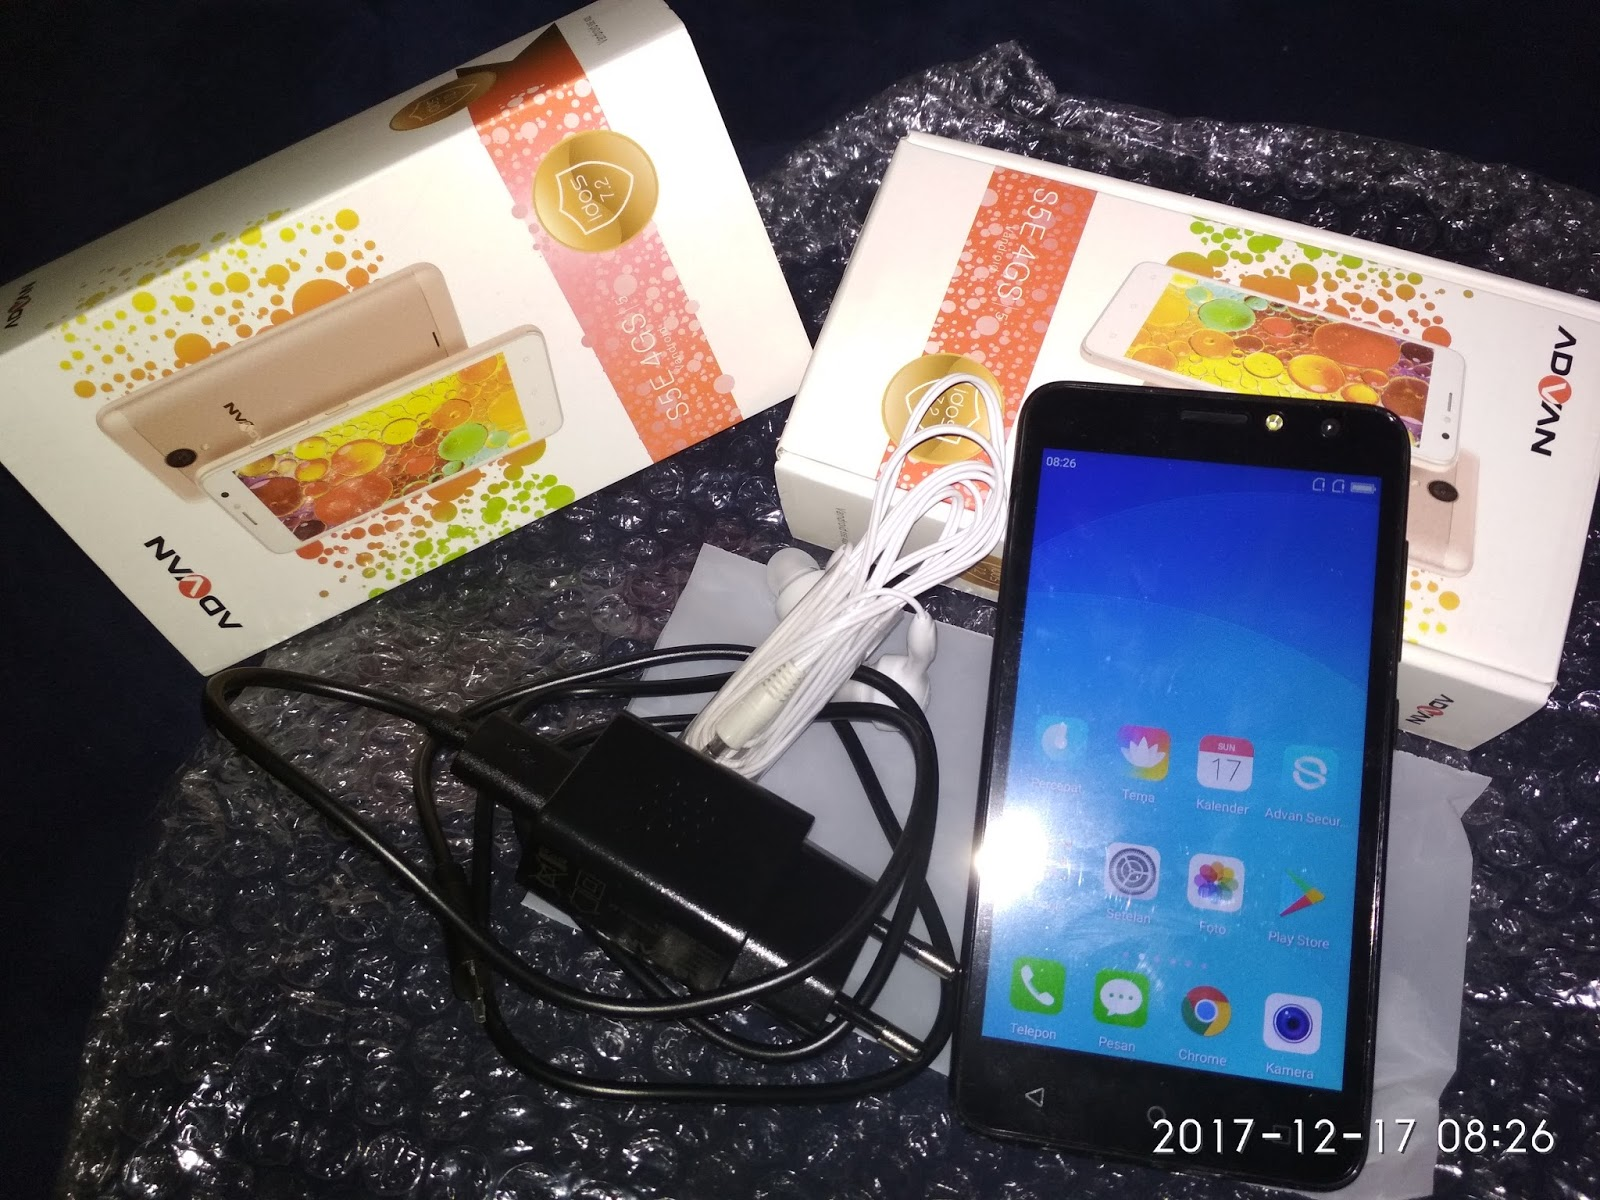 Review 3 Hari Pemakaian Android Advan S5E 4G LTE